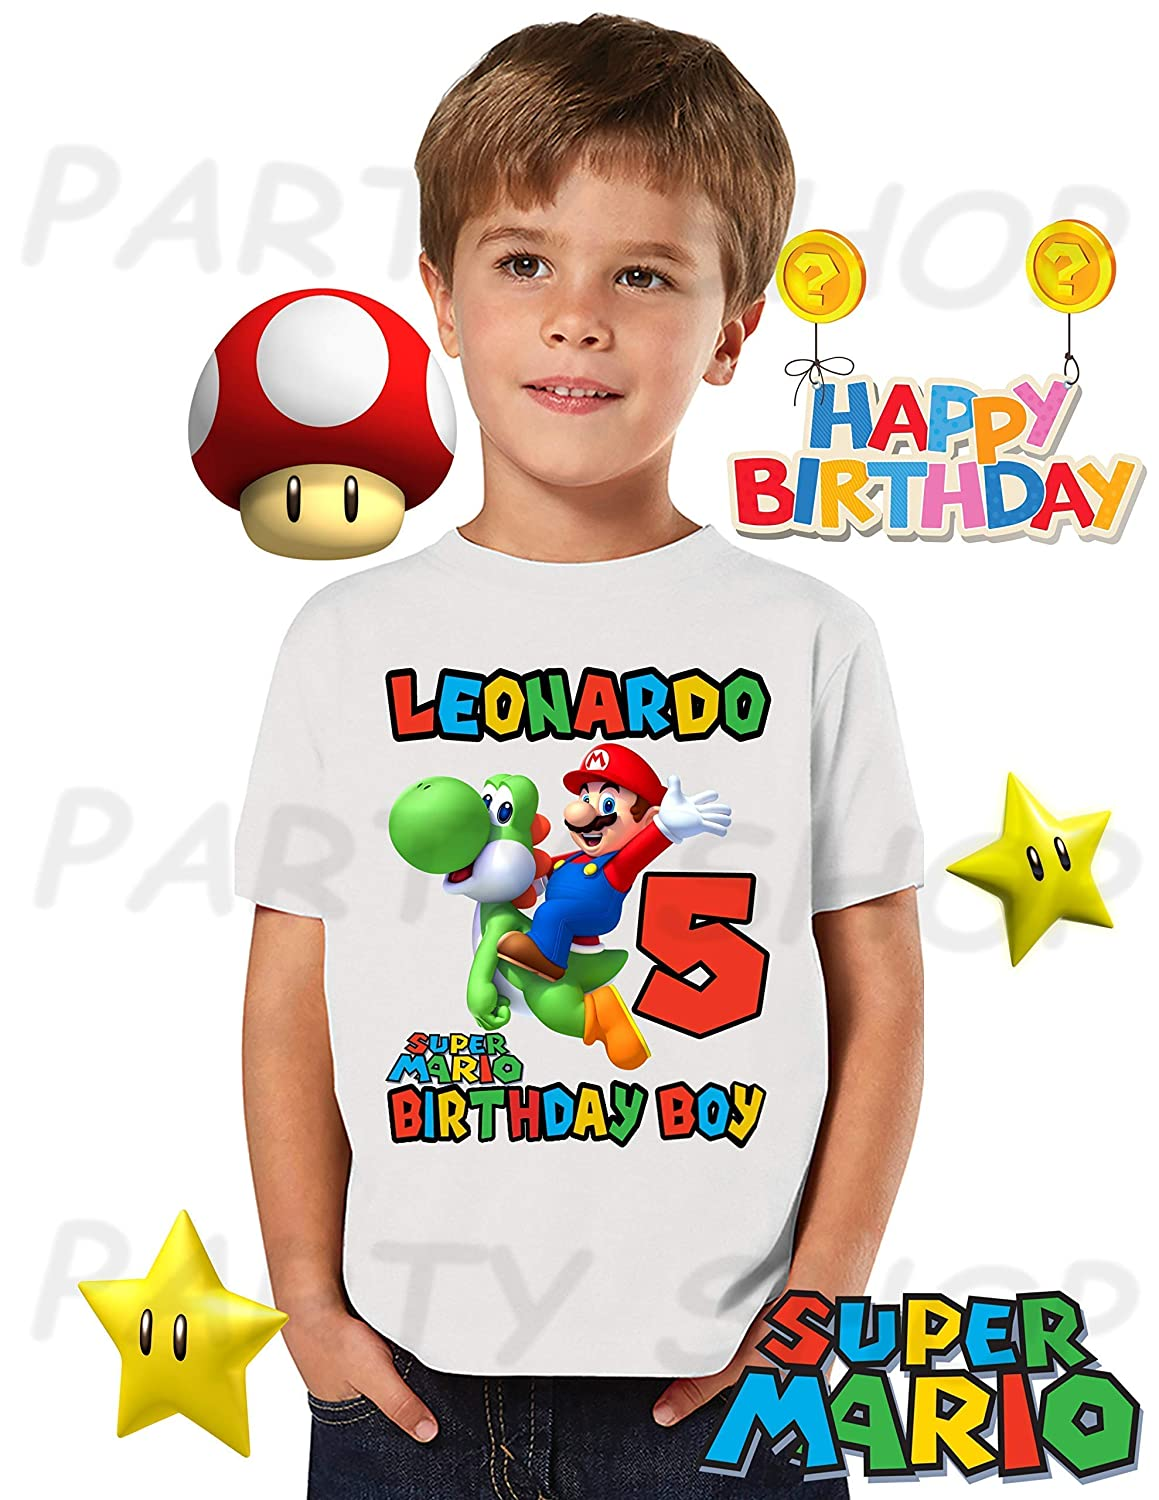 Super Mario Yoshi Personalized Custom Birthday Shirt in 8 Different Colors